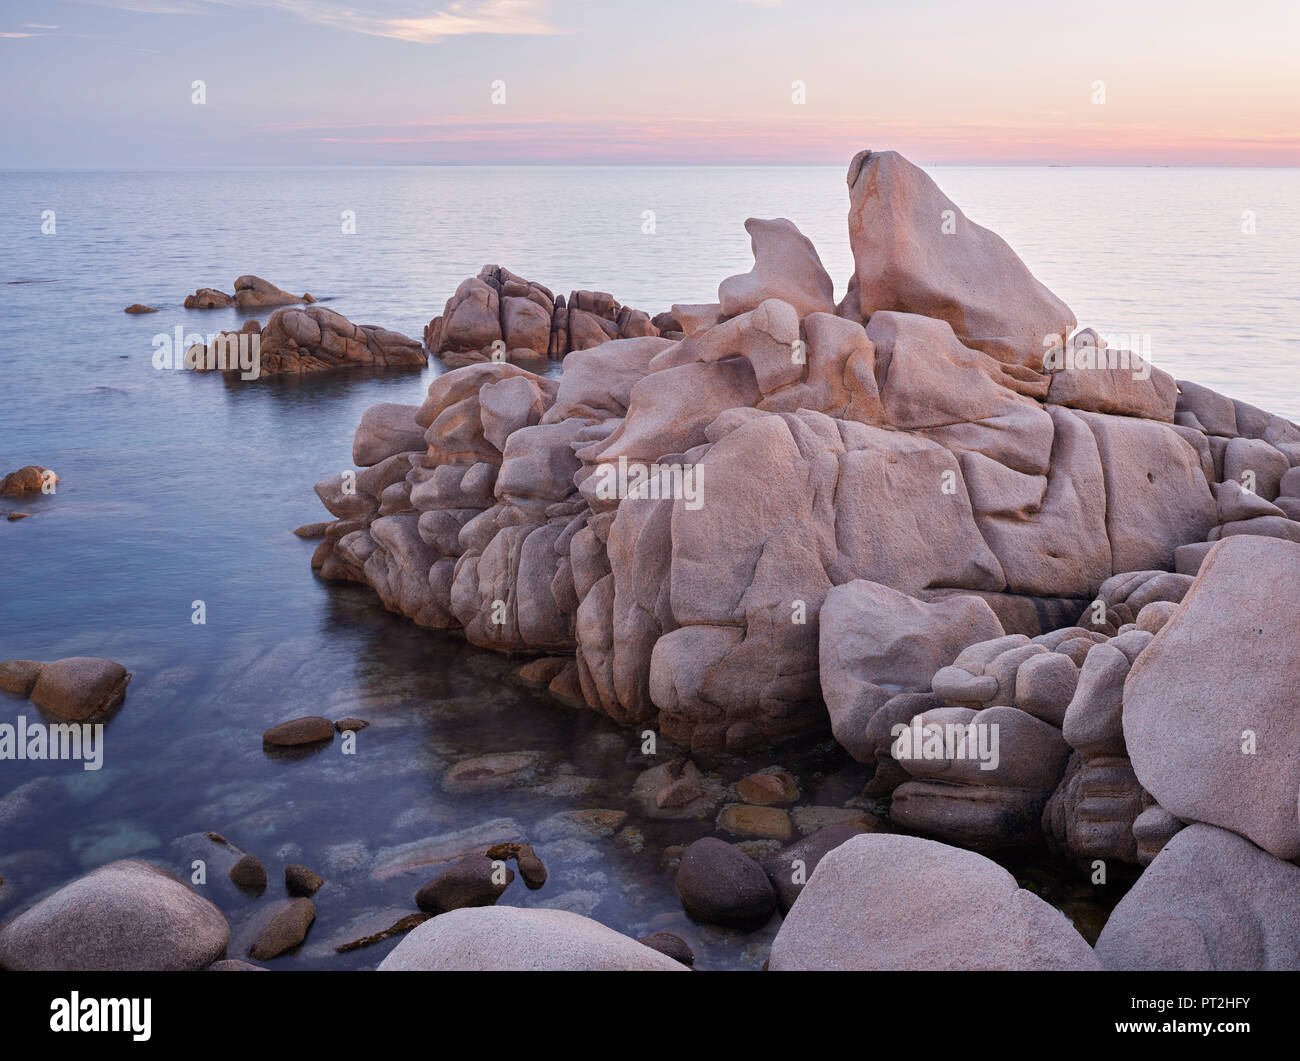 Rock formations in the Bruzzi nature reserve, near Pianottoli-Caldarello, Corse du Sud, Corsica, France - Stock Image